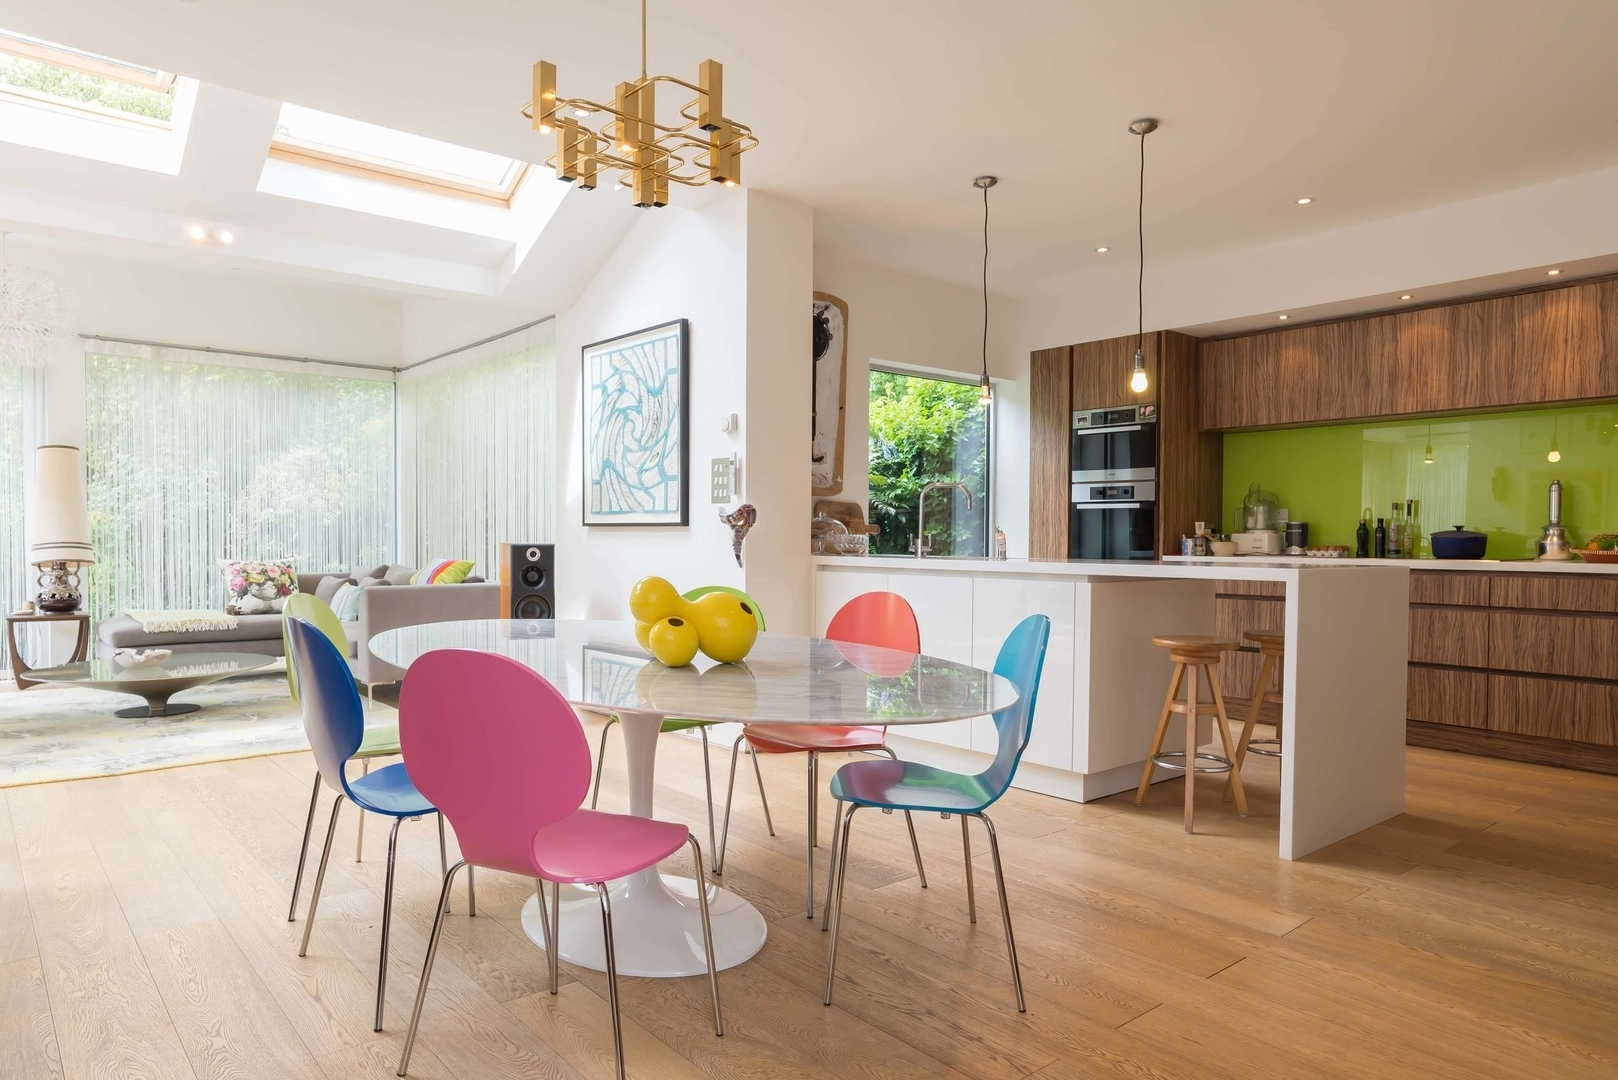 The Smartie House – 3 Bed House In Richmond • Veeve Throughout Most Recent Smartie Dining Tables And Chairs (View 17 of 25)